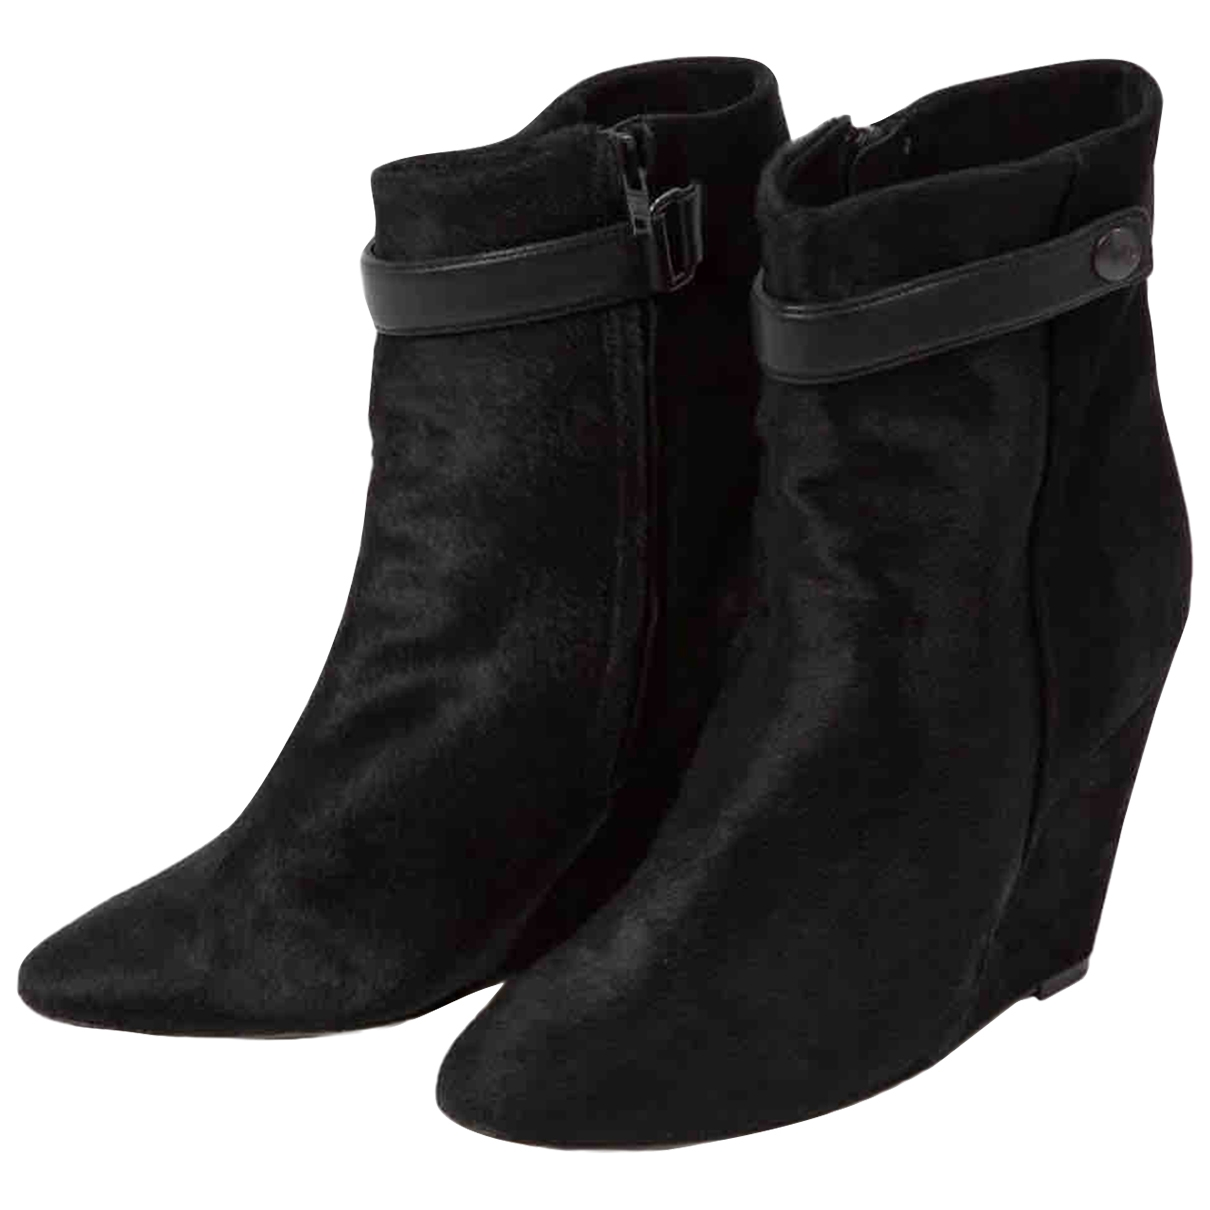 Isabel Marant Purdey Black Pony-style calfskin Ankle boots for Women 39.5 EU